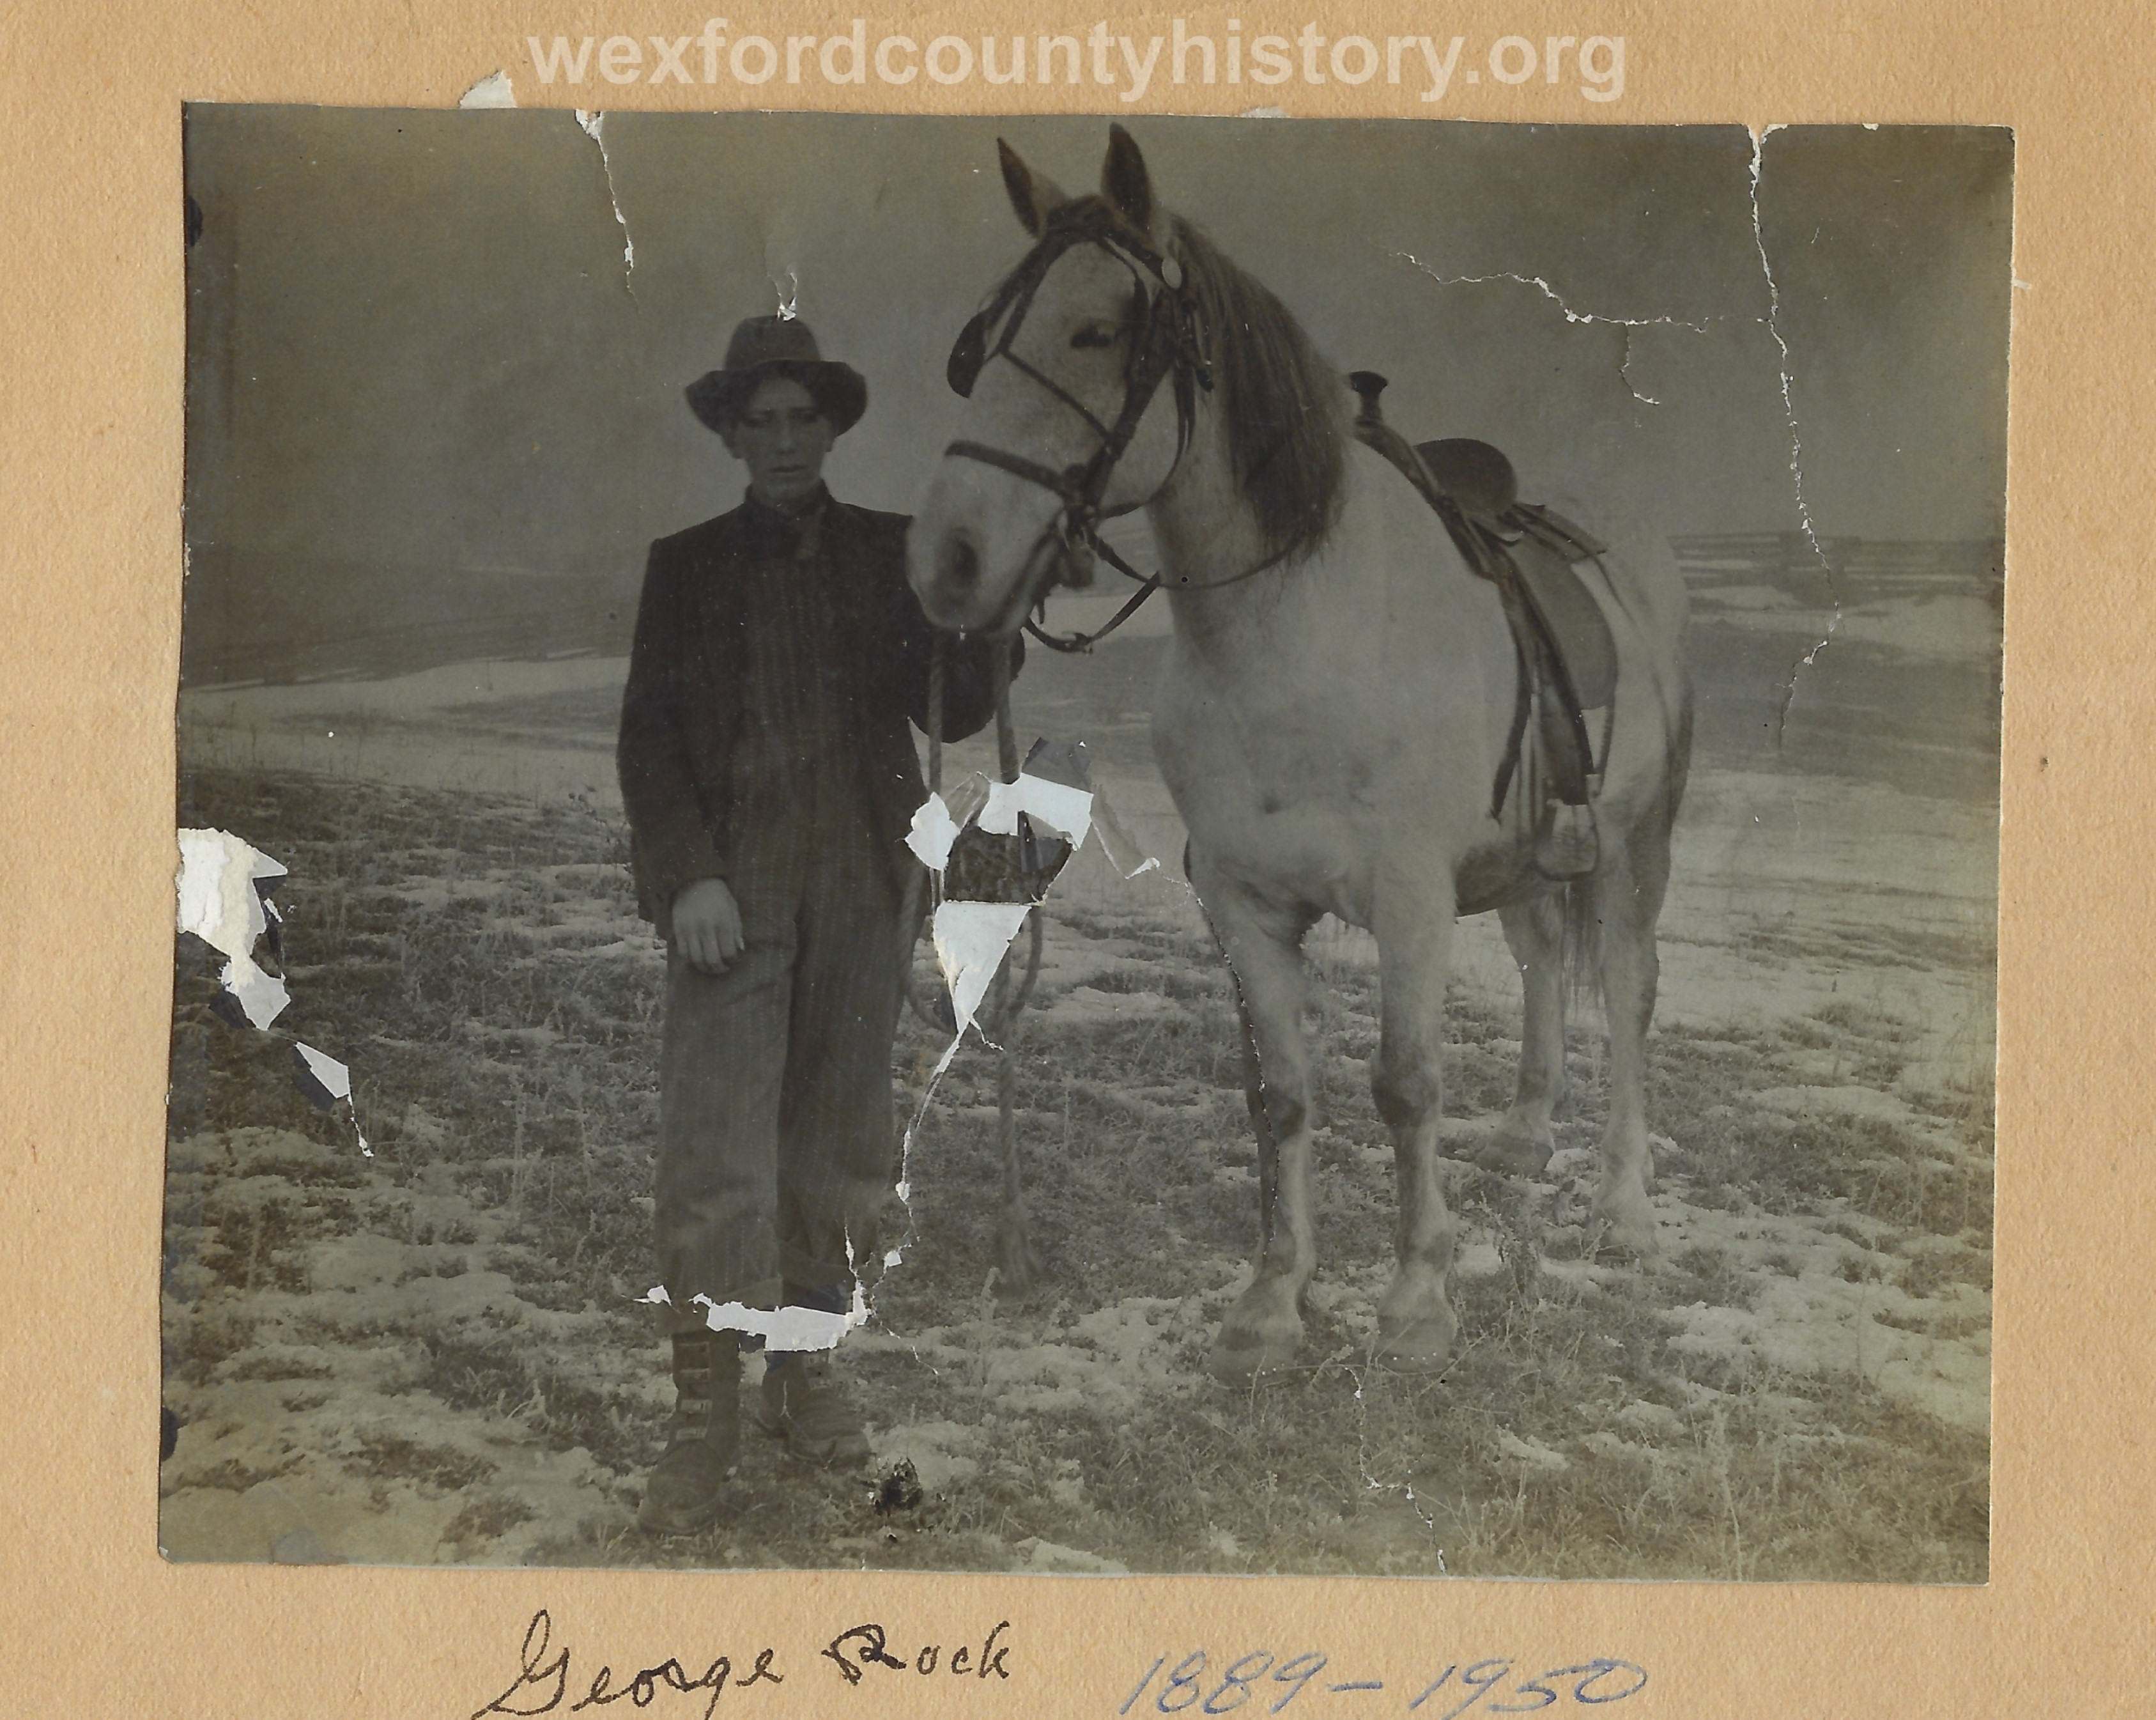 George Rock and His Horse, Dick, in 1910